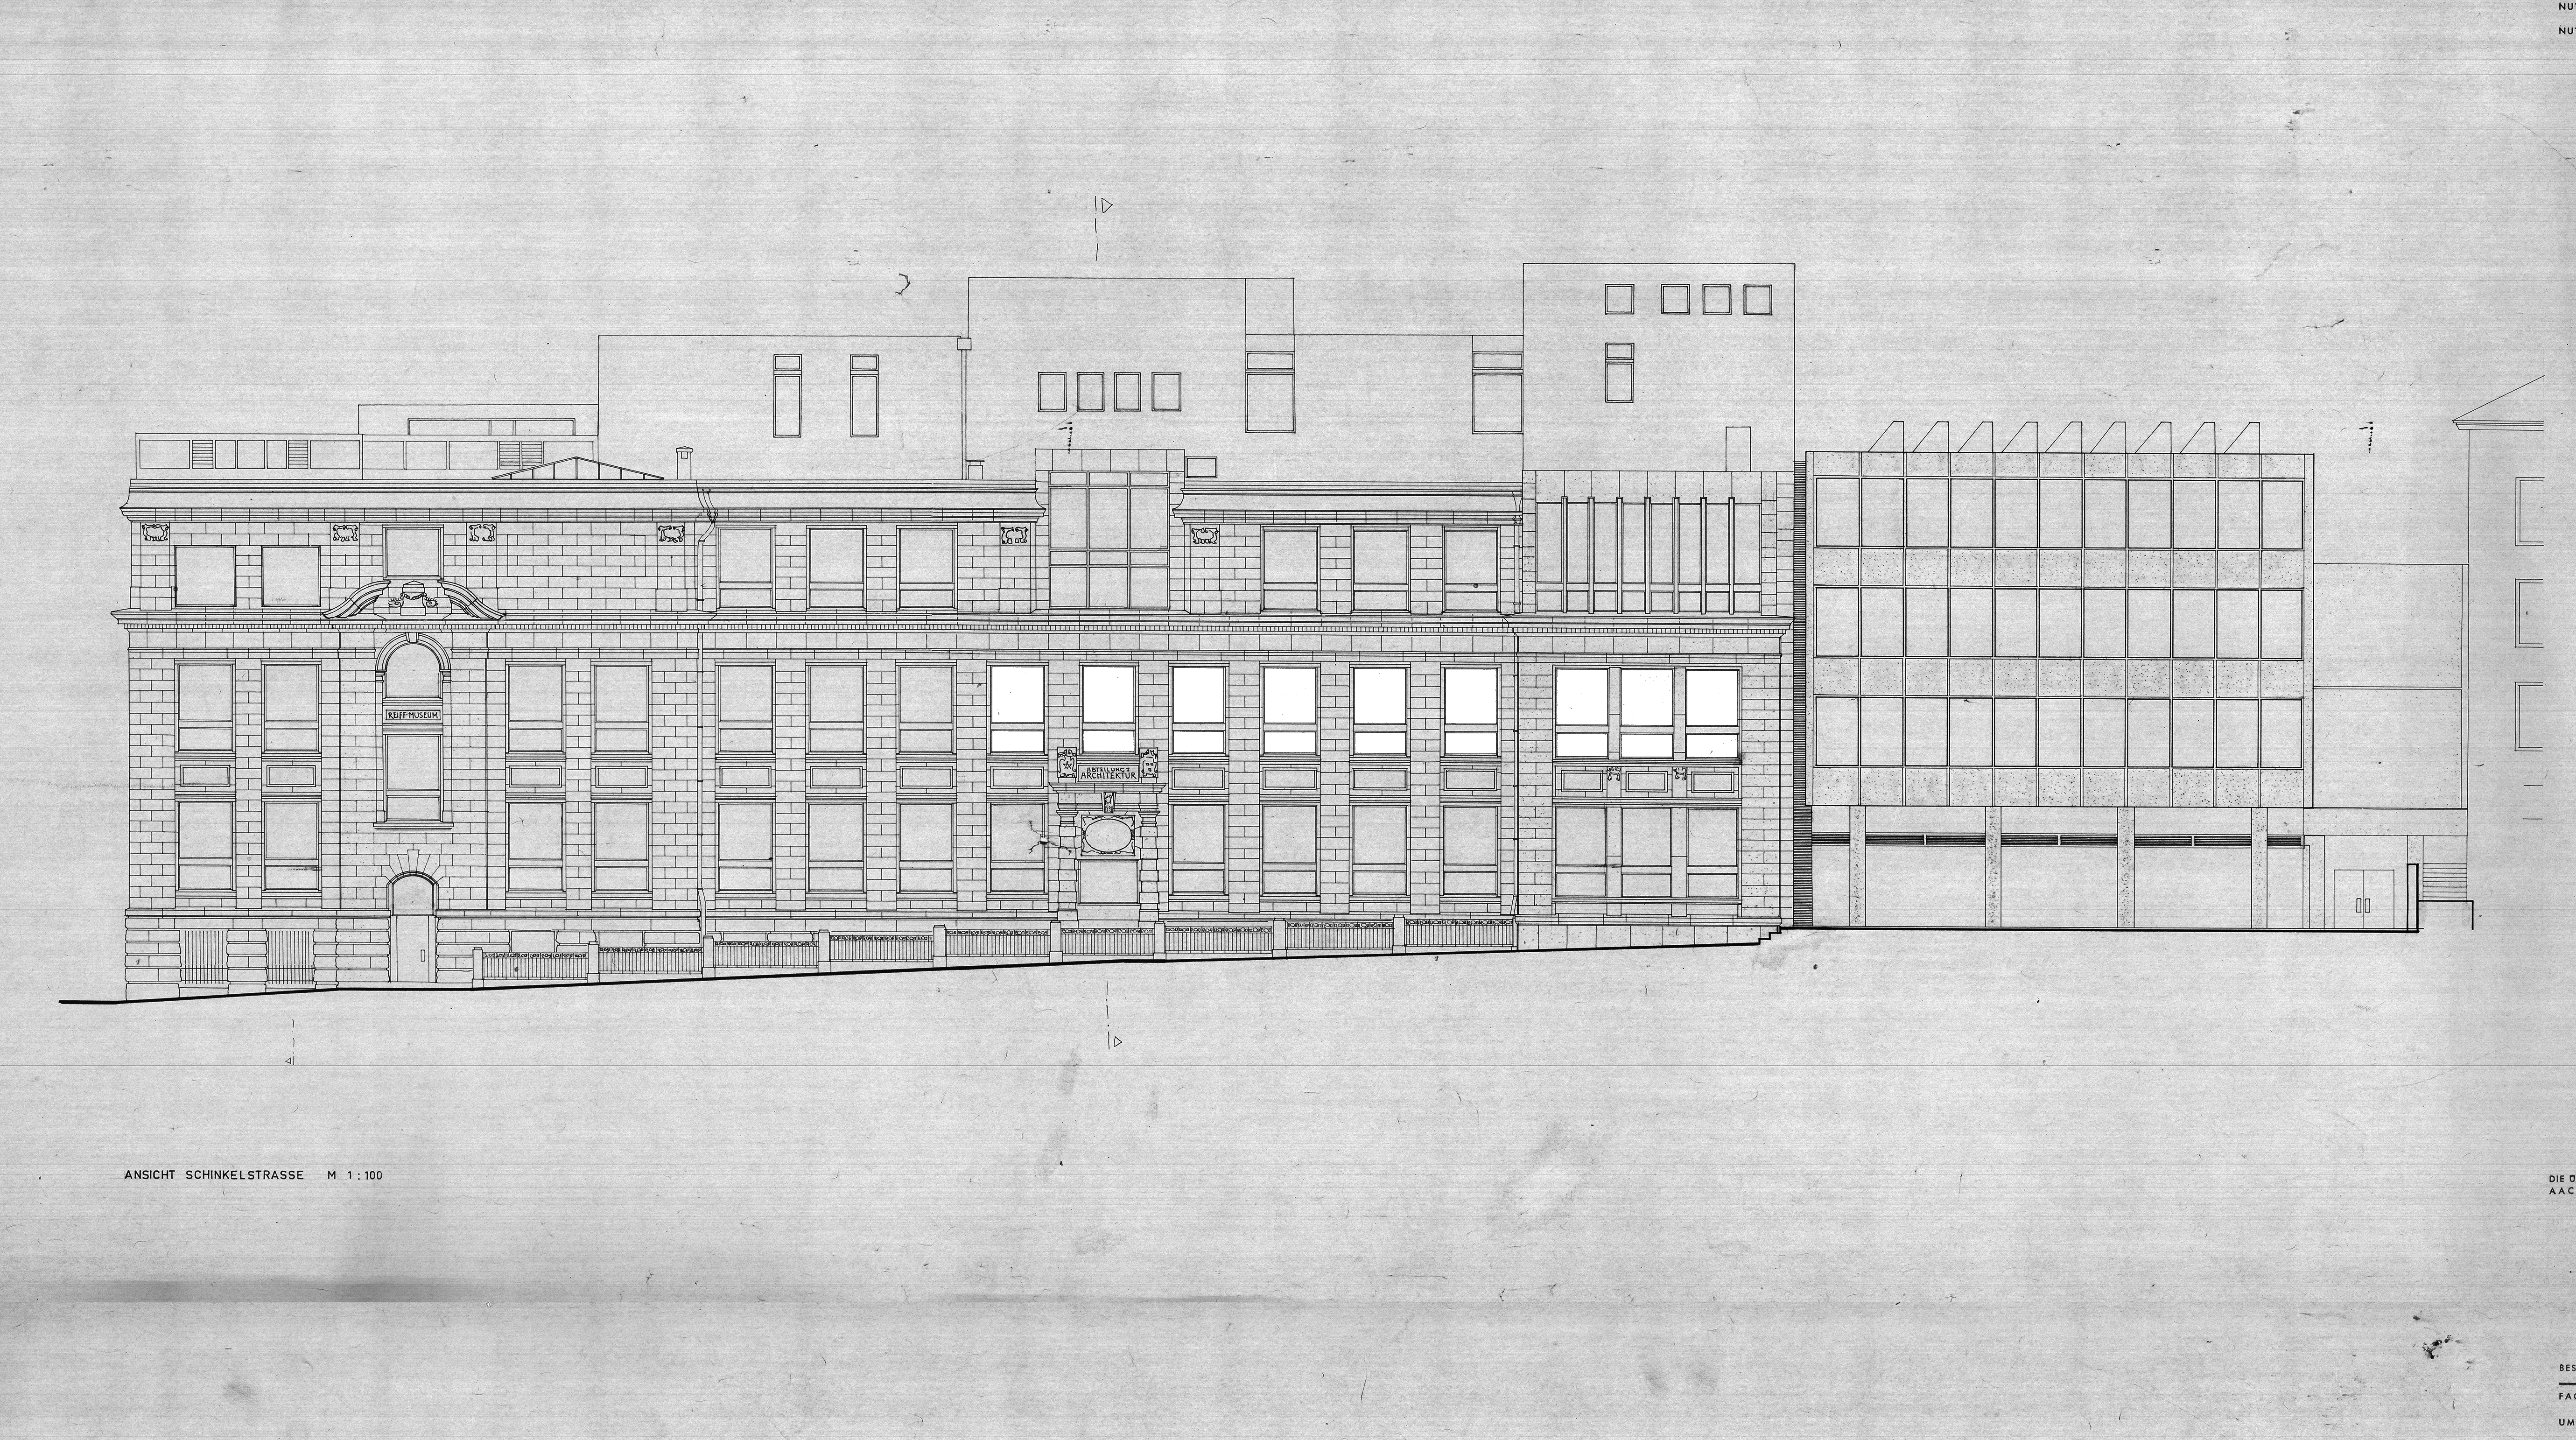 Elevation of the Reiff Museum